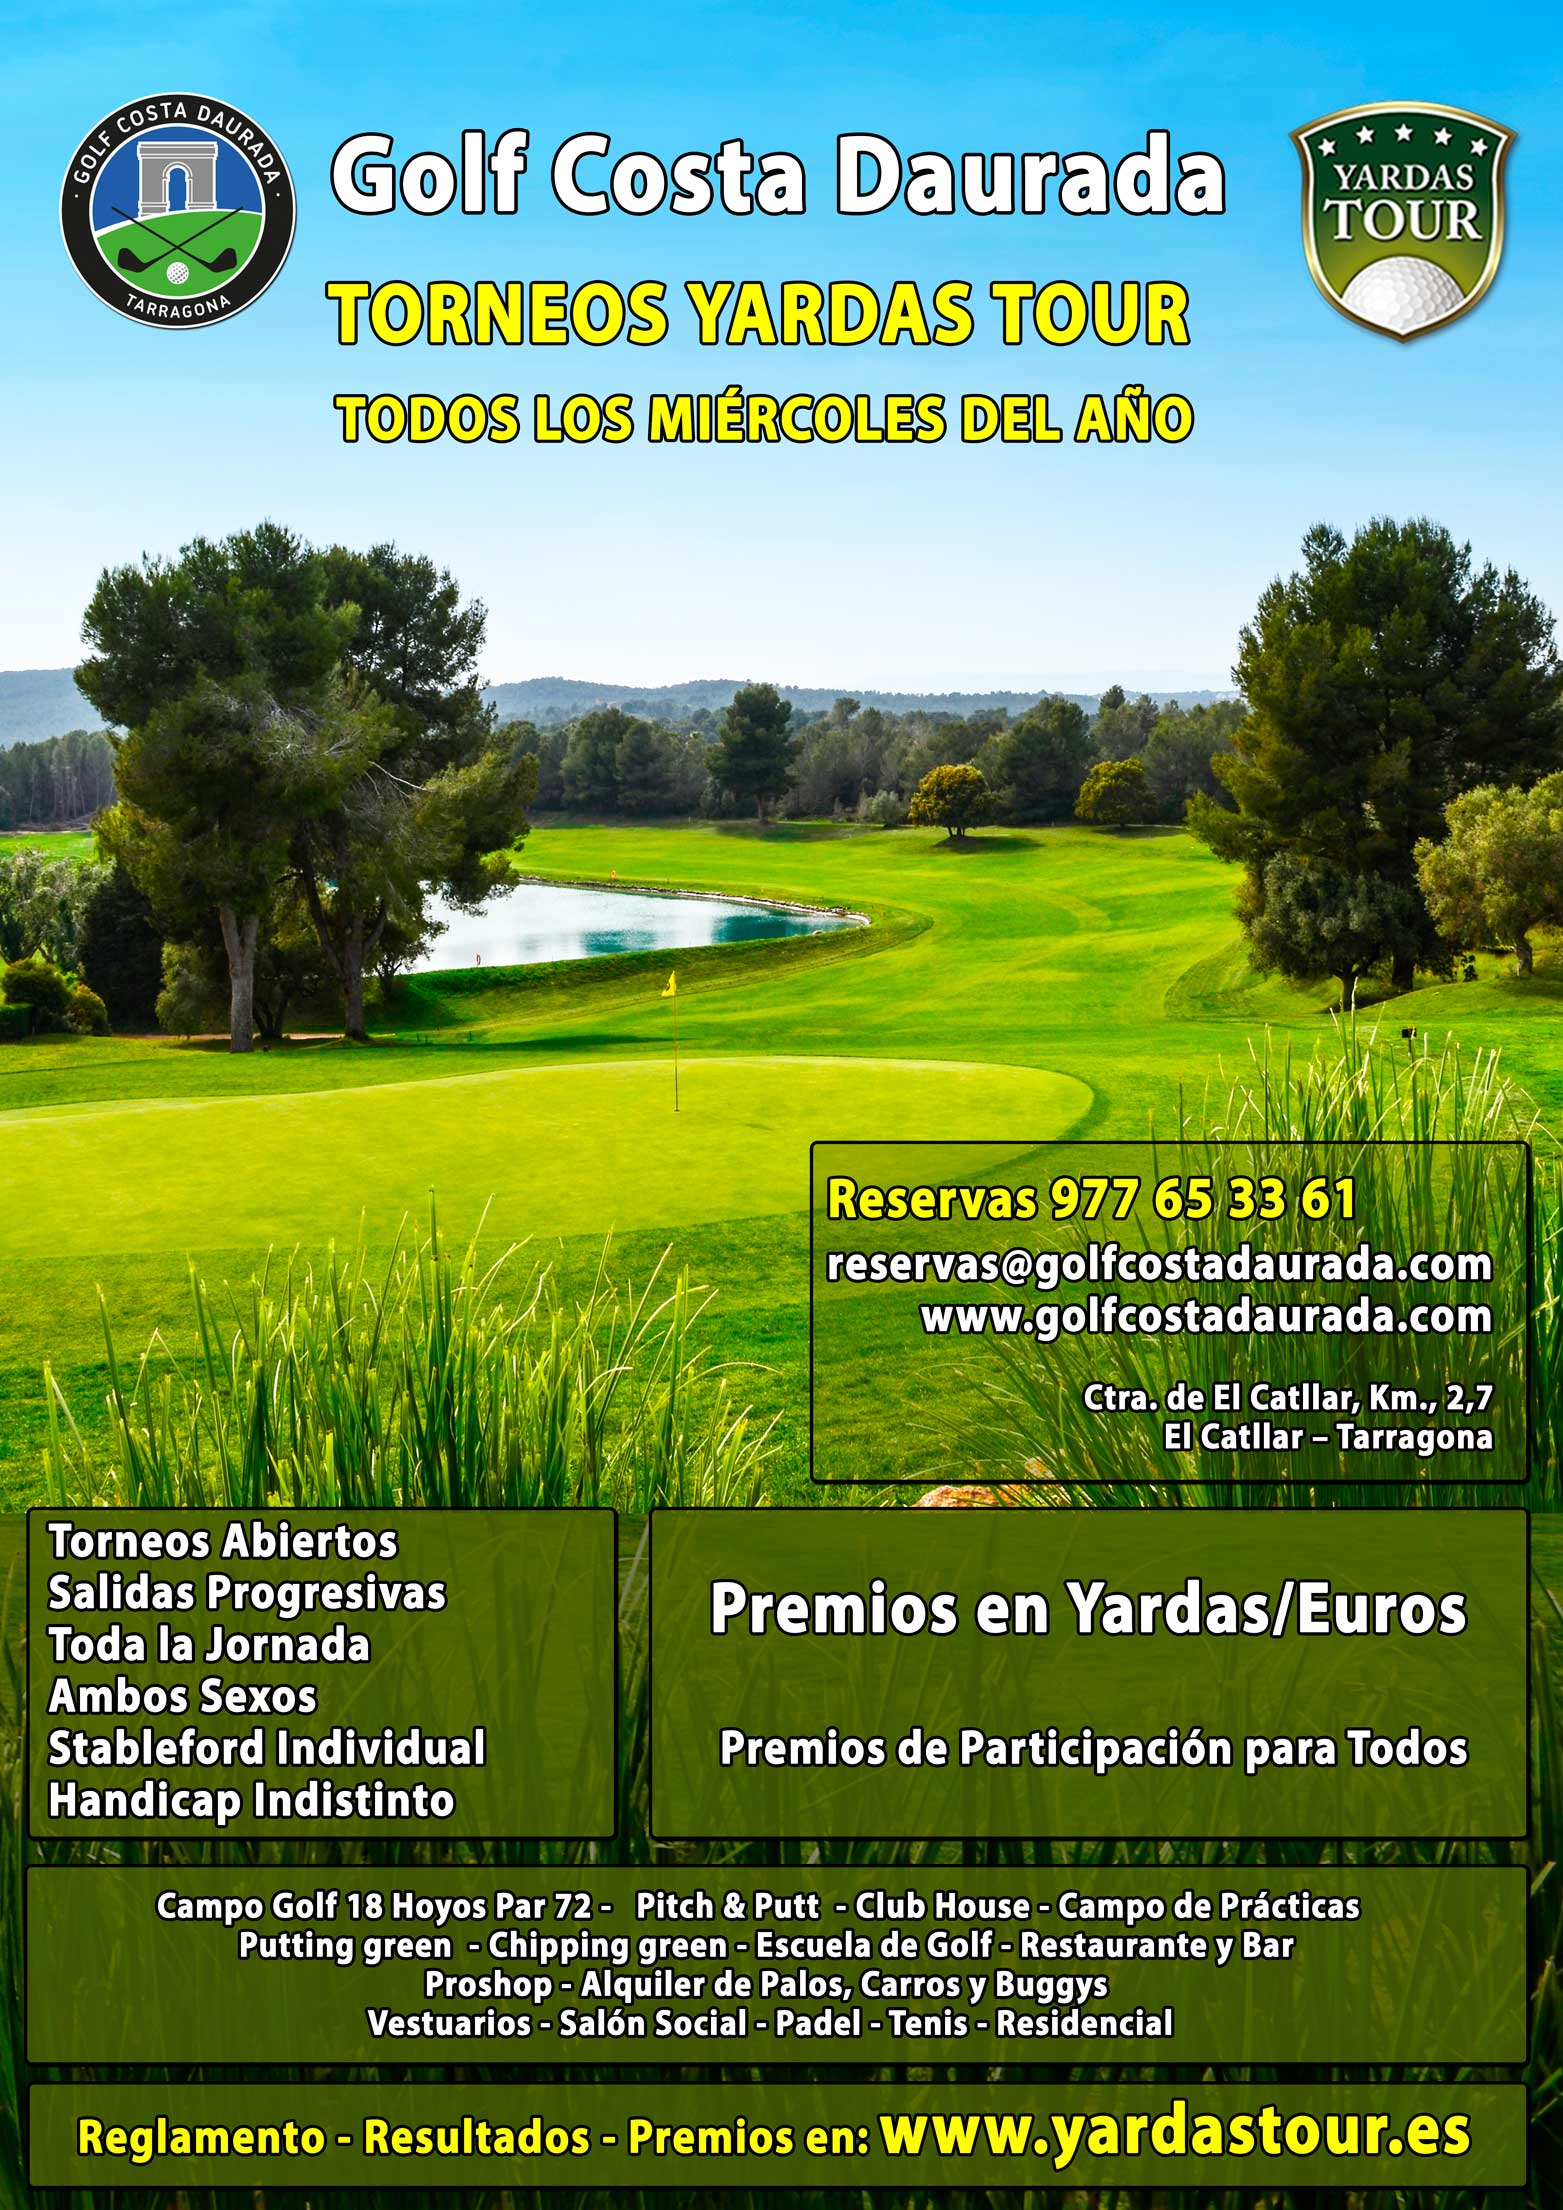 Golf Costa Daurada - Torneos Yardas Tour